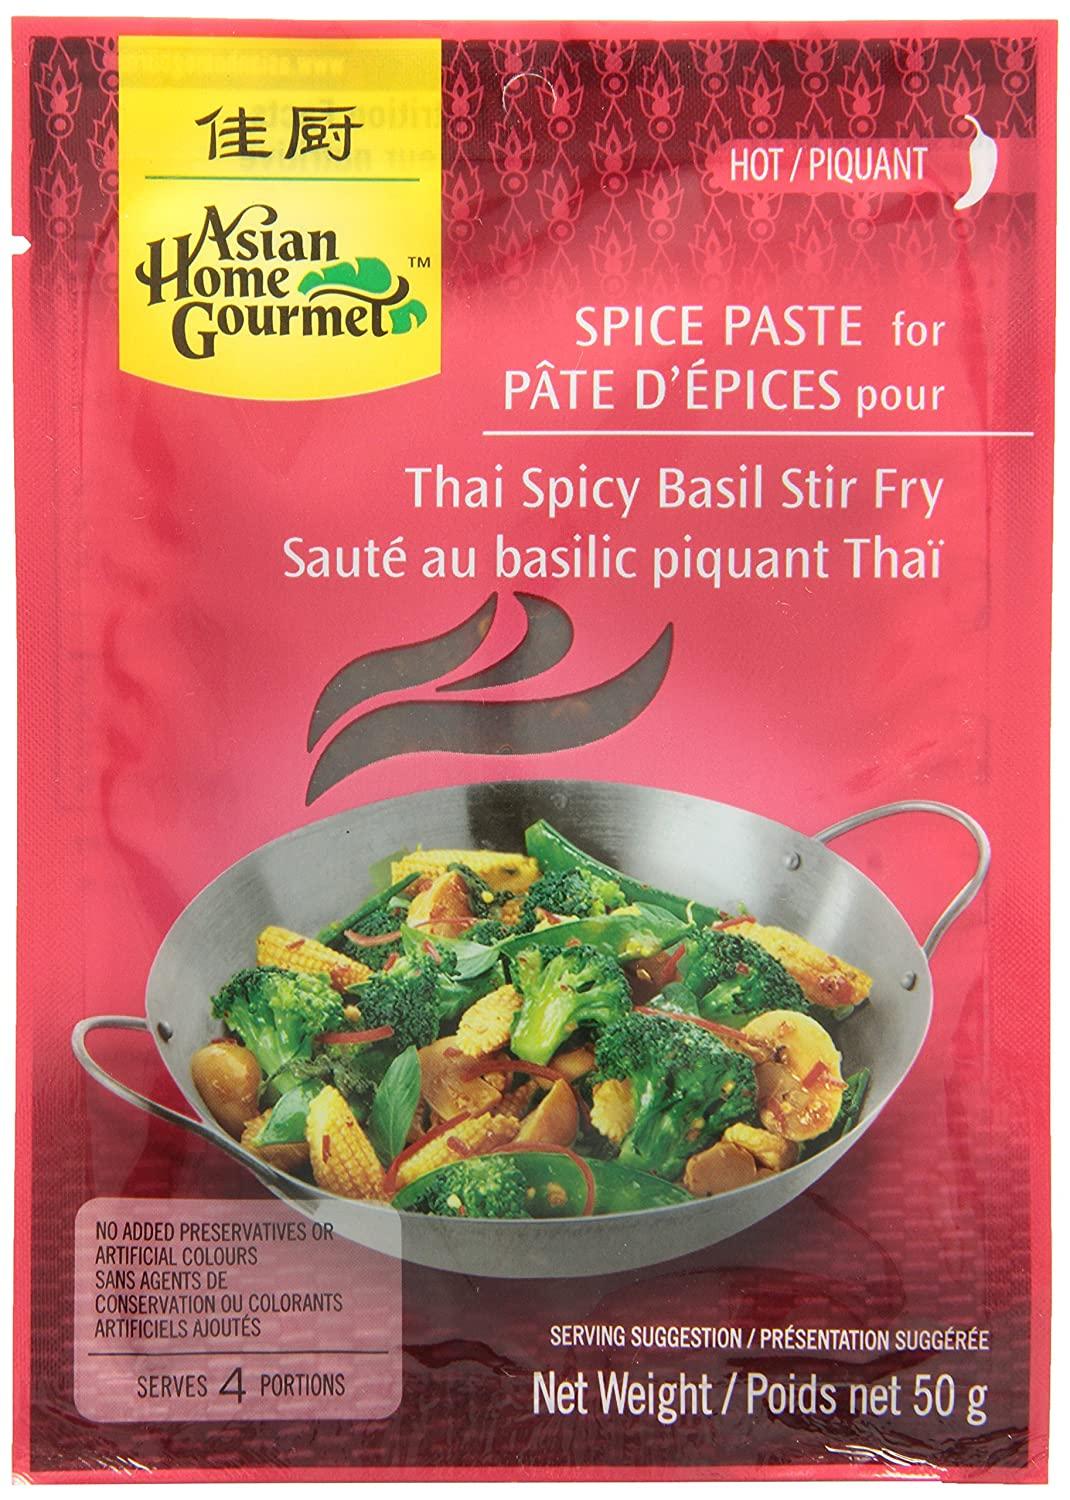 Asian Home Gourmet Spice Paste Sale price for High material Fry Basil Spicy Thai Stir